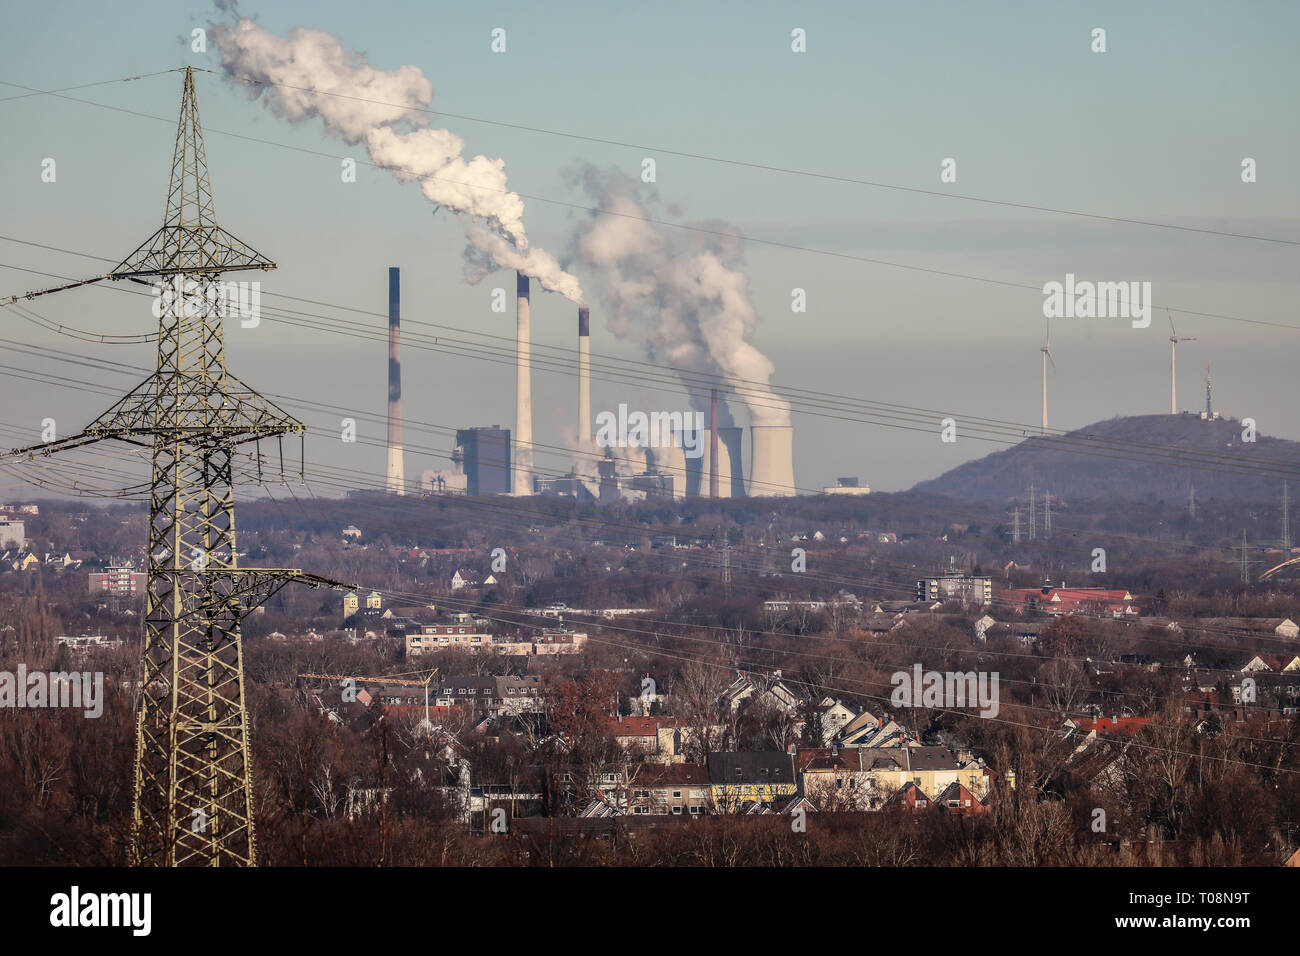 20.01.2019, Gelsenkirchen, North Rhine-Westphalia, Germany - Industrial landscape in the Ruhr area, Gelsenkirchen Horst district at the front, Scholve - Stock Image